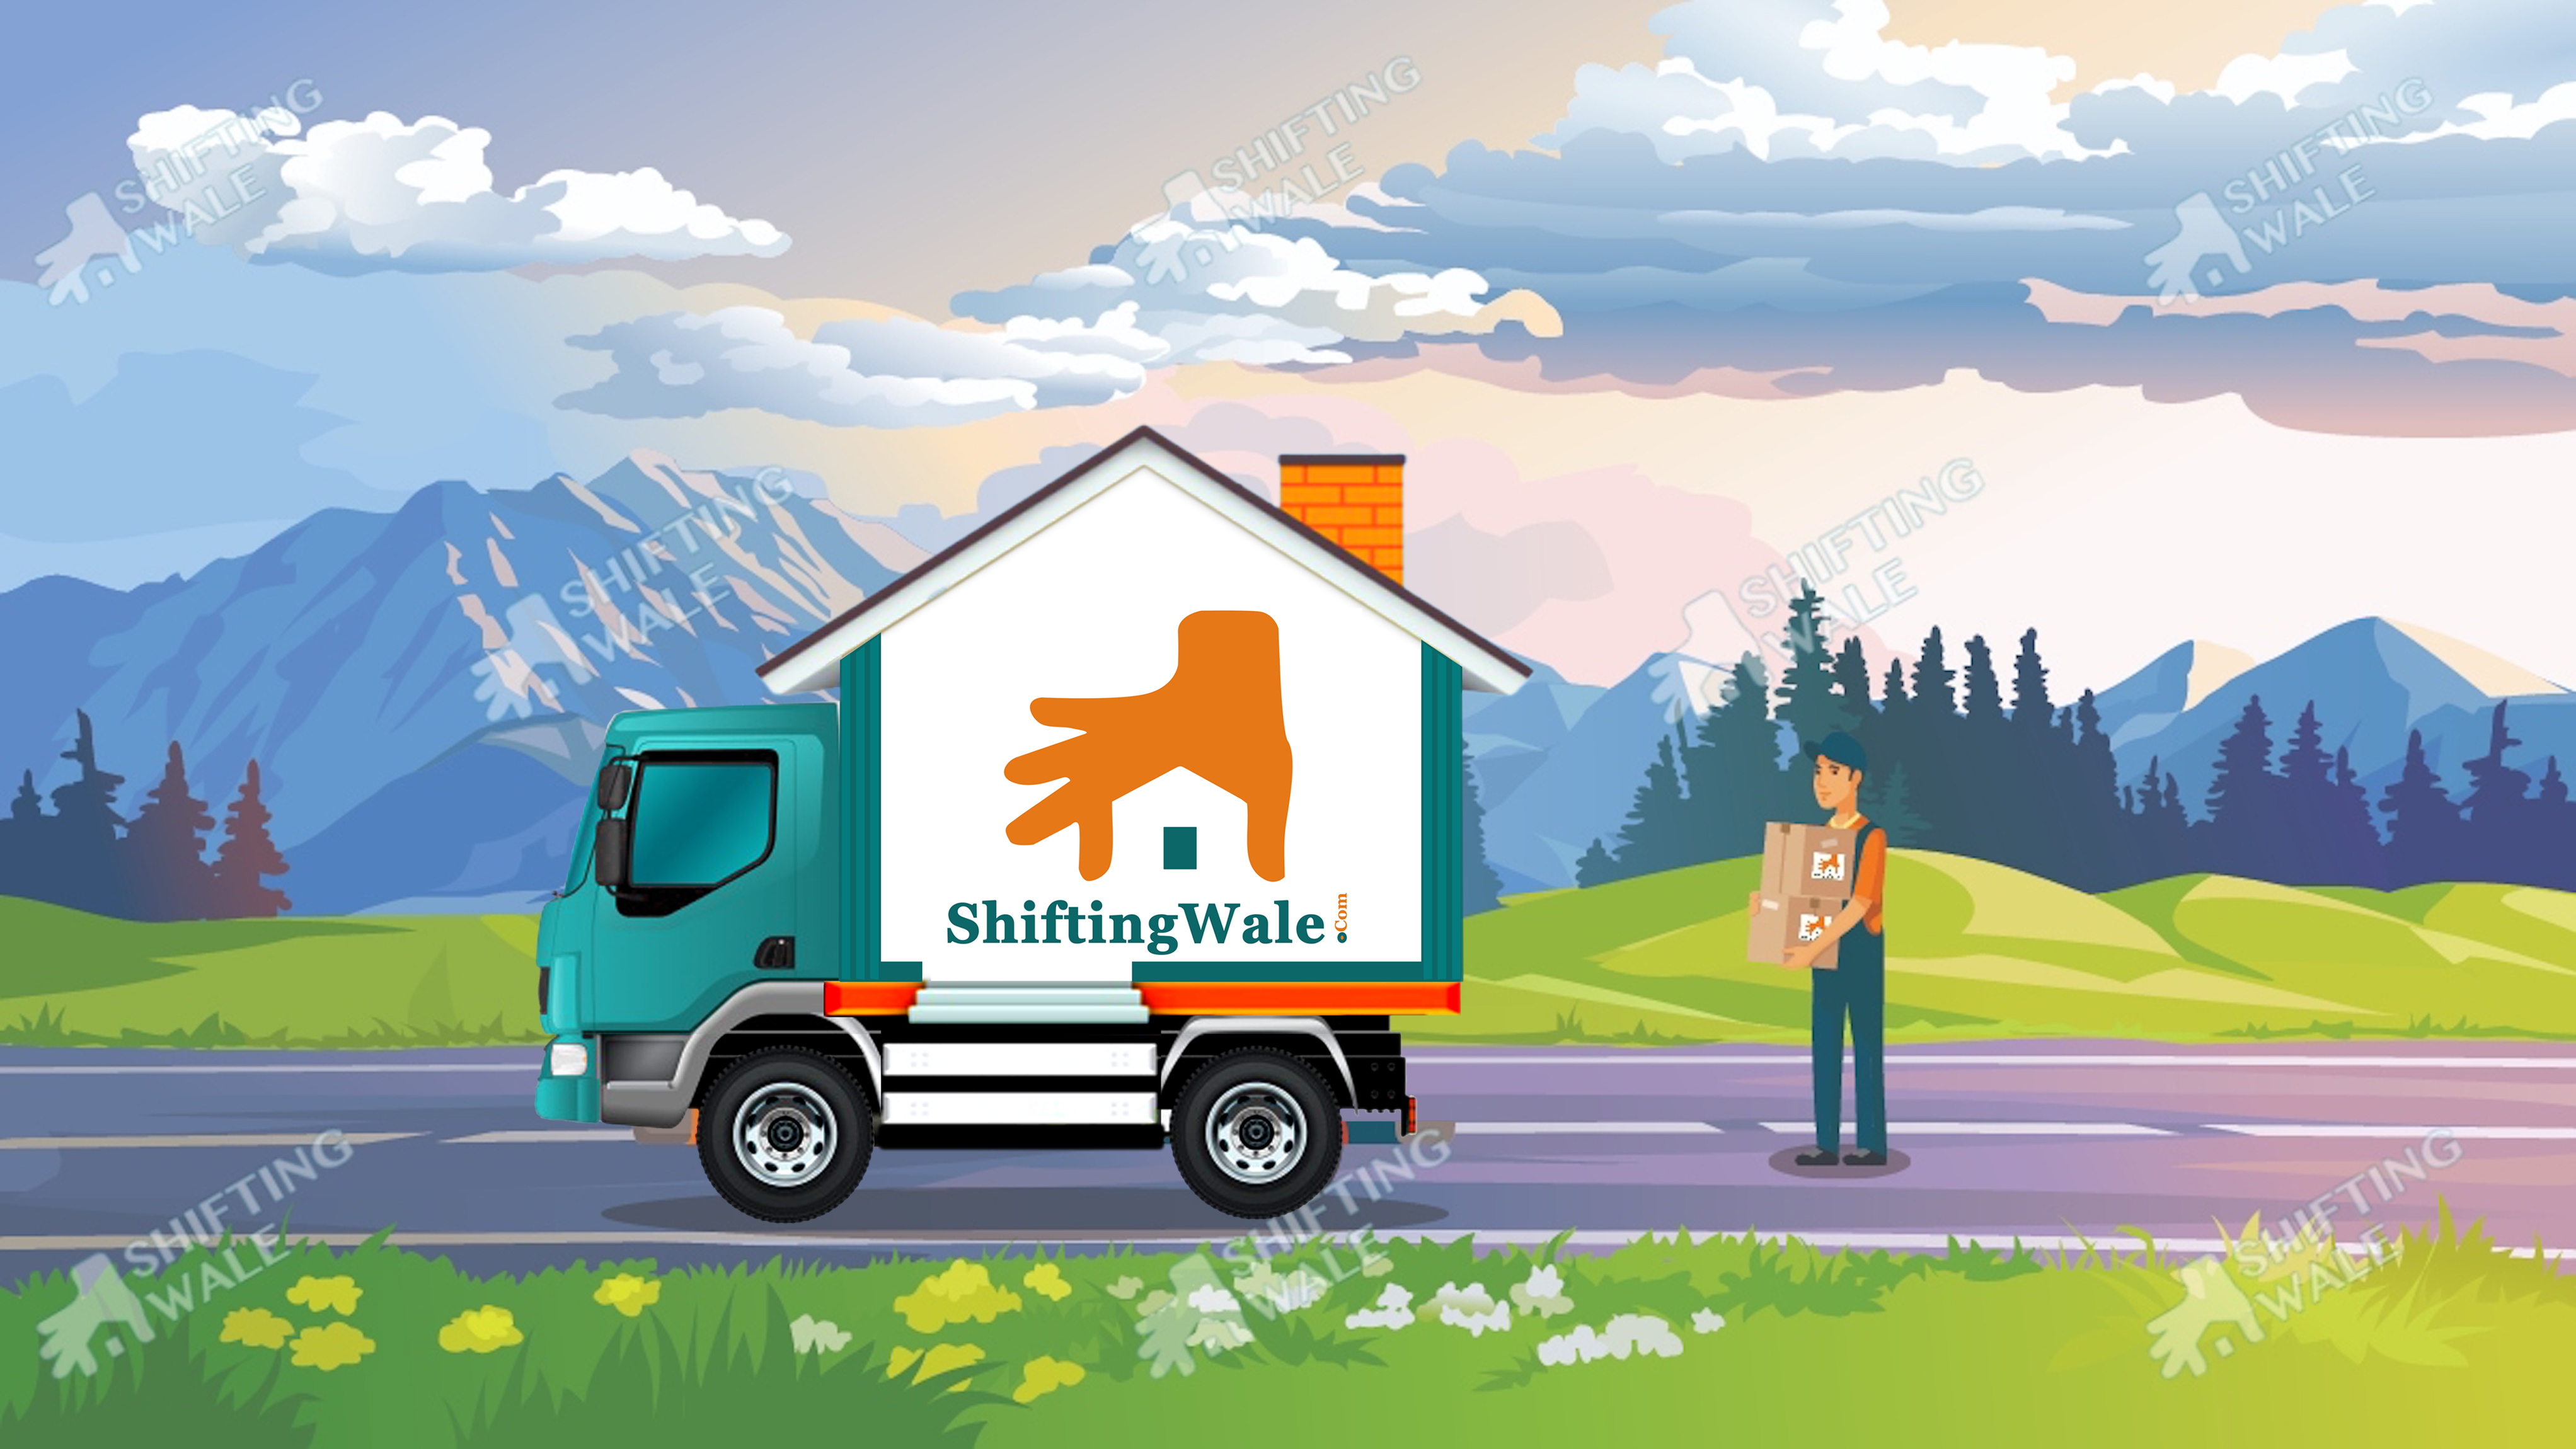 Want Packers and Movers for Household Goods Bike from Delhi Gurugram Noida Ghaziabd to Ludhiana Jalandhar Amritsar